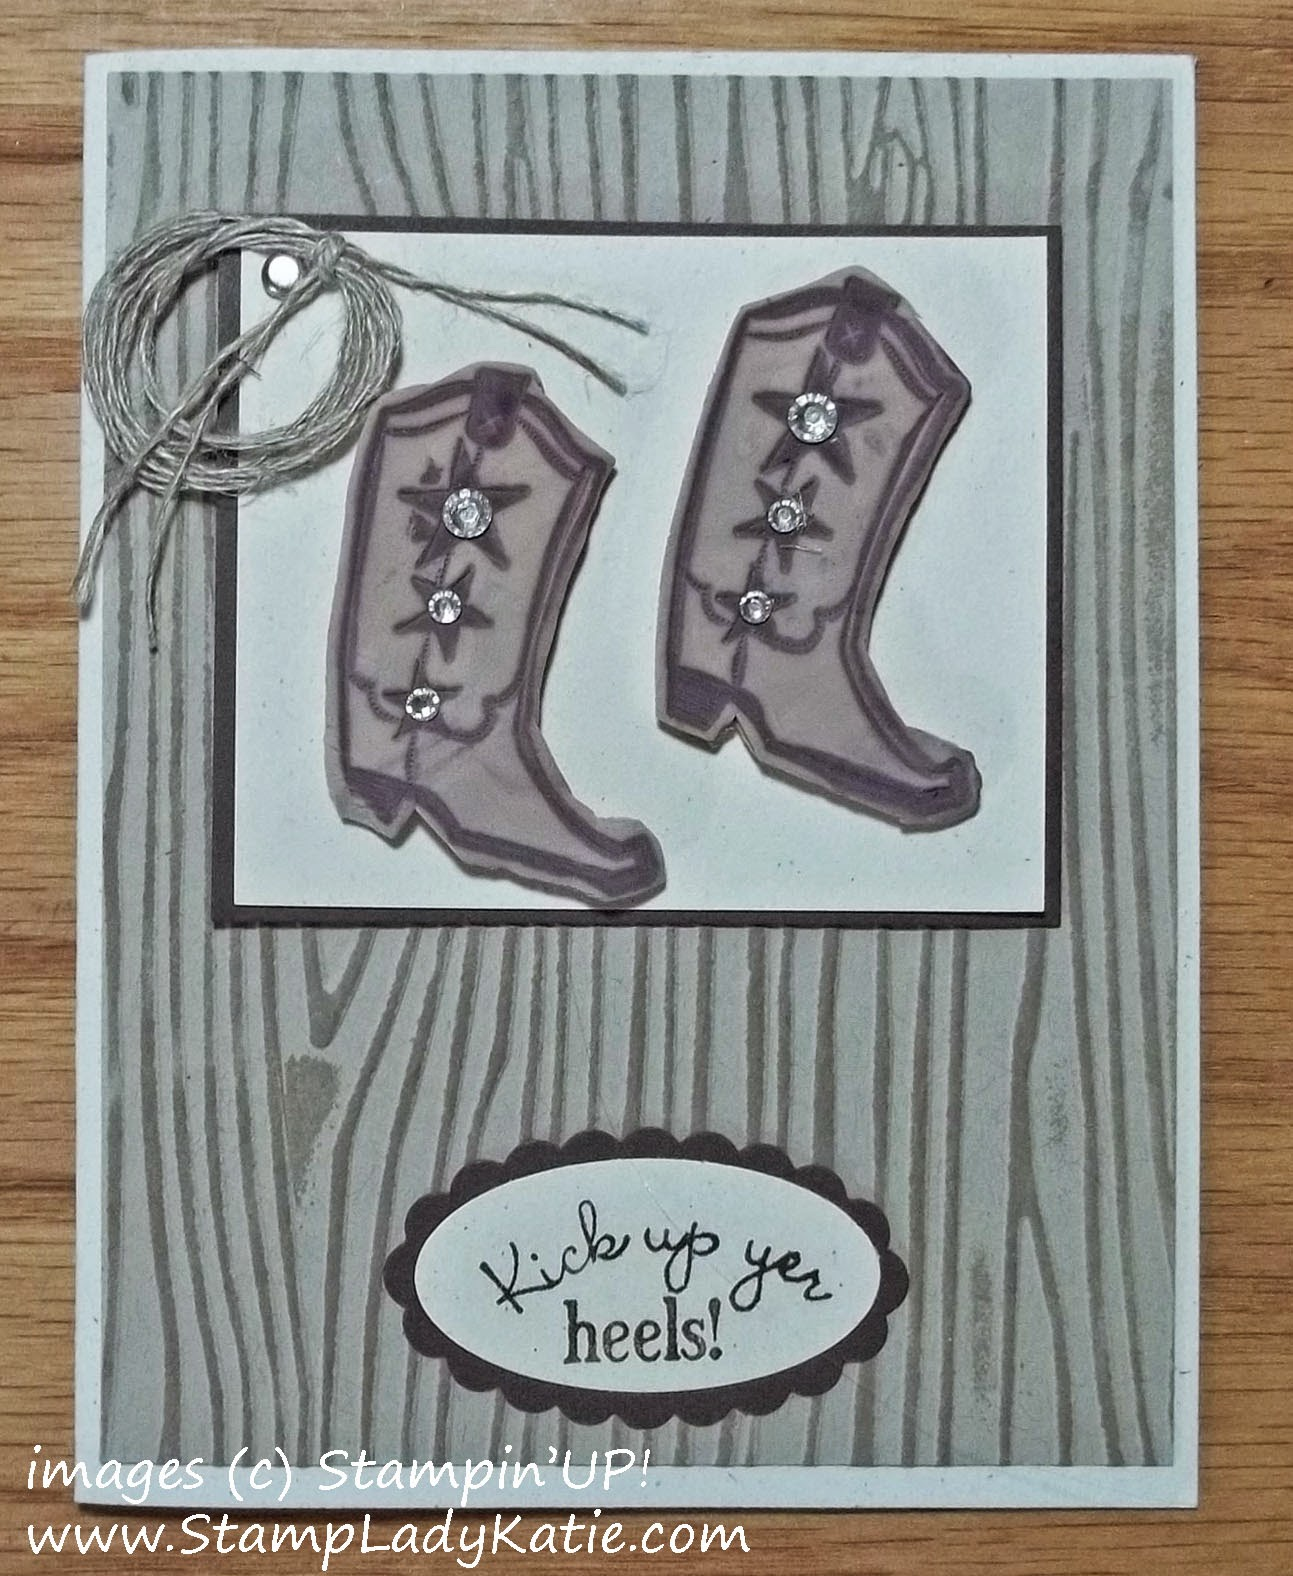 Card made with Stampin'UP!'s Bootiful Occasions stamp set stamped in Polymer Clay